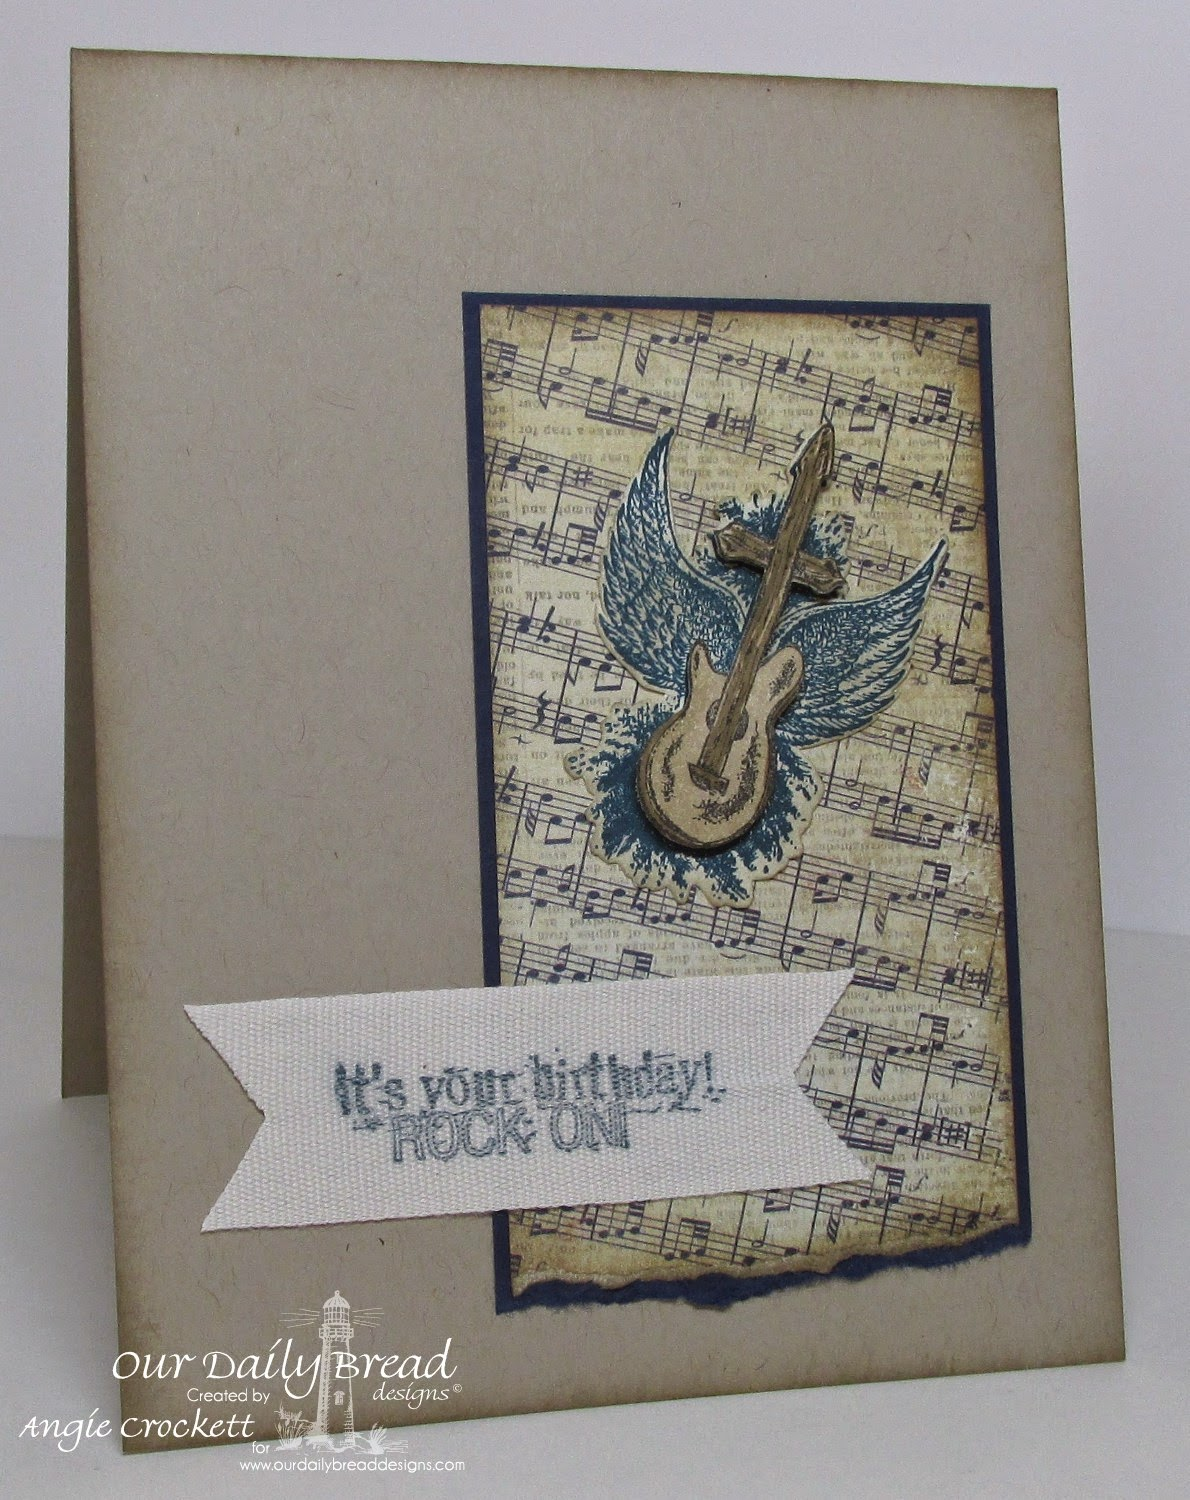 Our Daily Bread designs Rock Star, Card Designer Angie Crockett